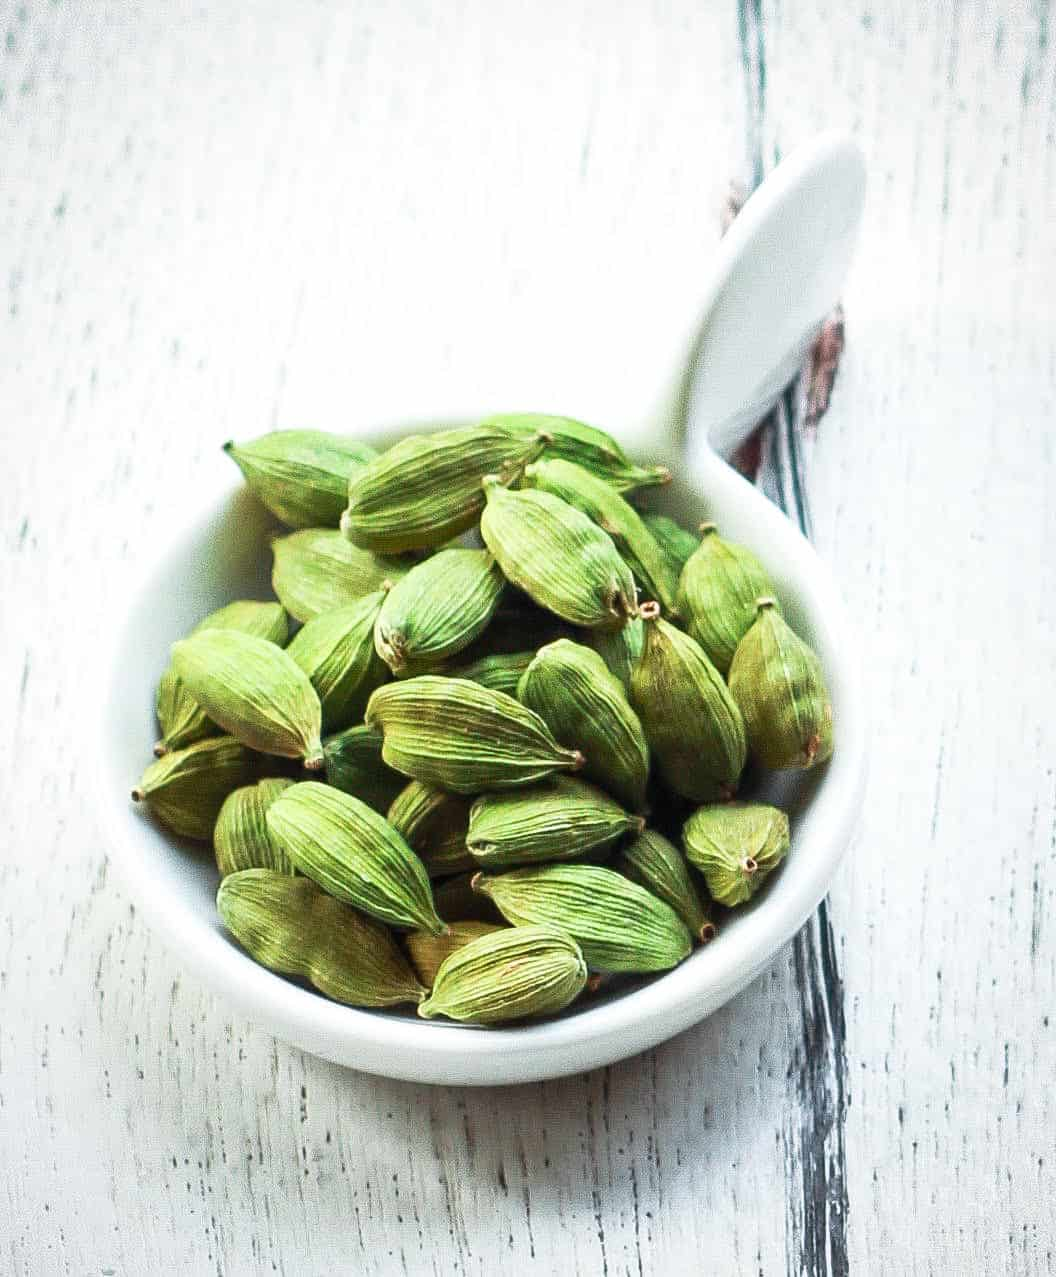 Cardamom / Elaichi Spice Healthy benefits